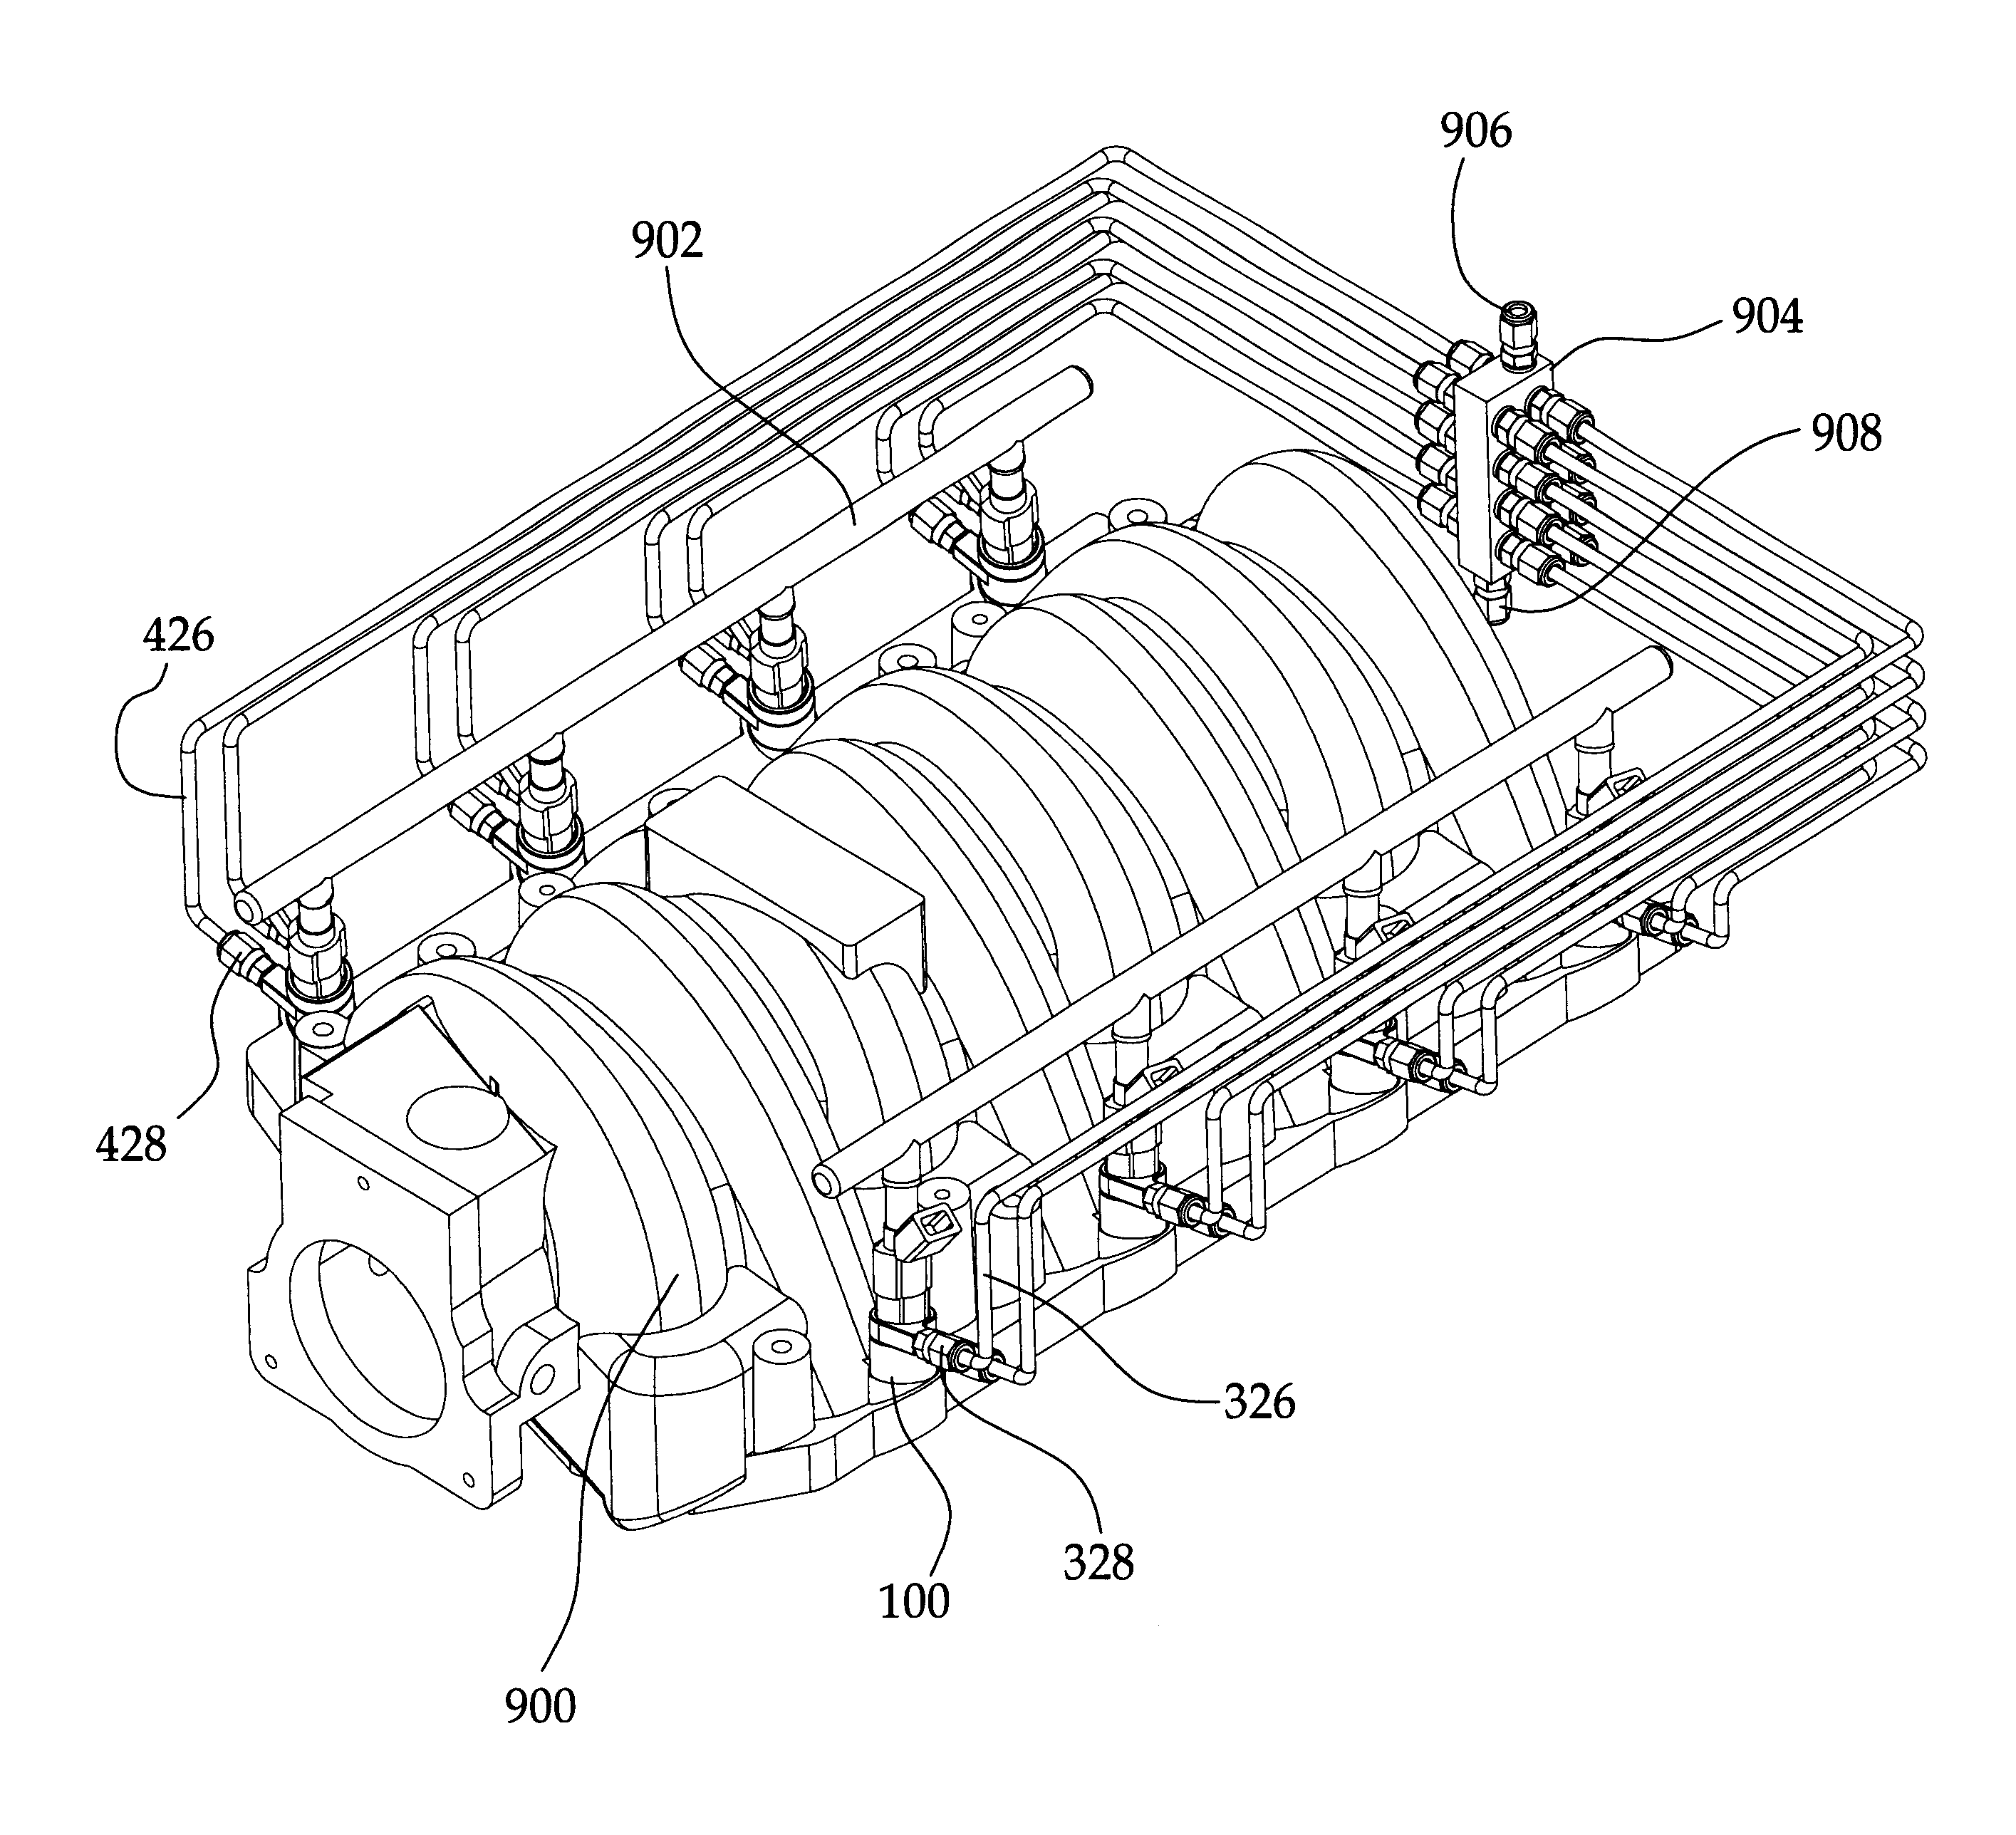 patent us6837228 fuel injector nozzle adapter patents Fuel Injector Cleaning patent drawing